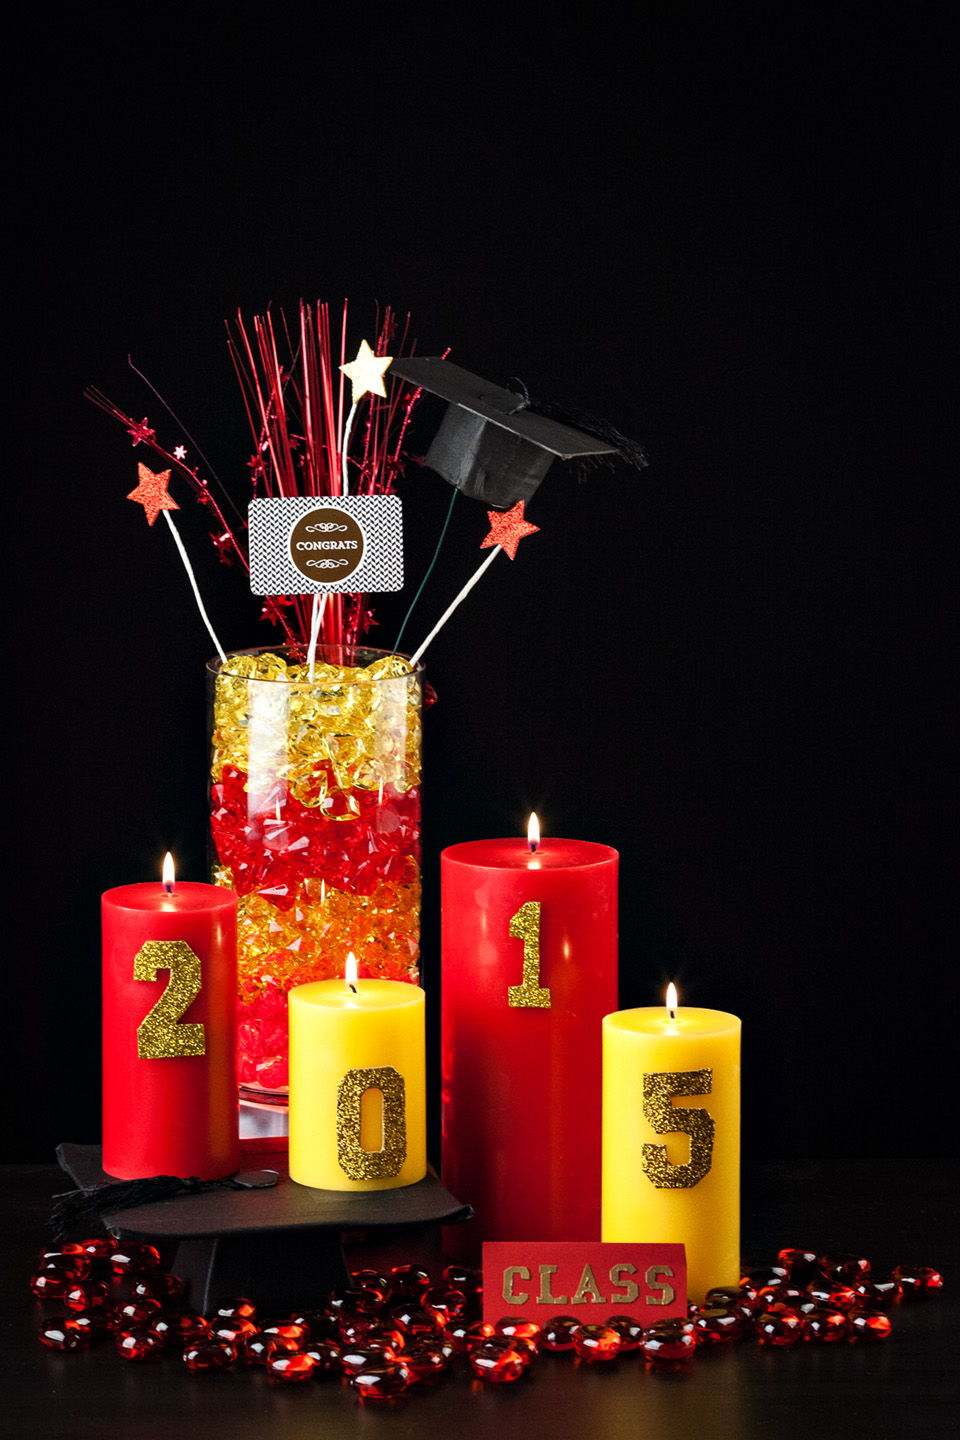 DIY Graduation Centerpiece Ideas